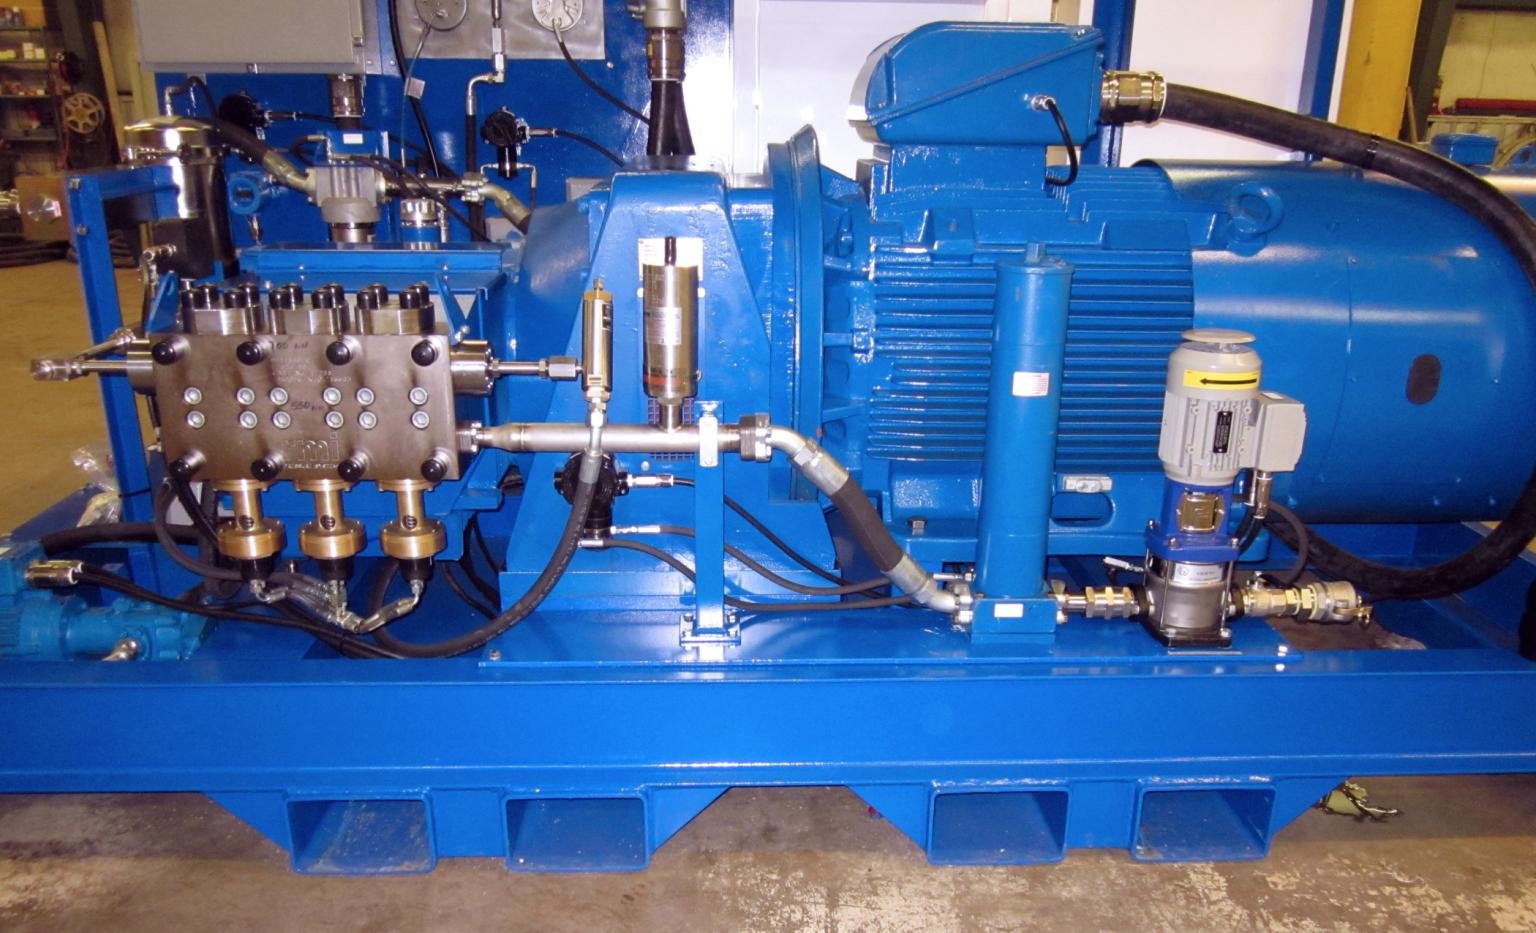 RMI Pressure Systems has developed a new test rig for onshore/offshore use which allows for streamlined cleansing and pressure testing in-situ